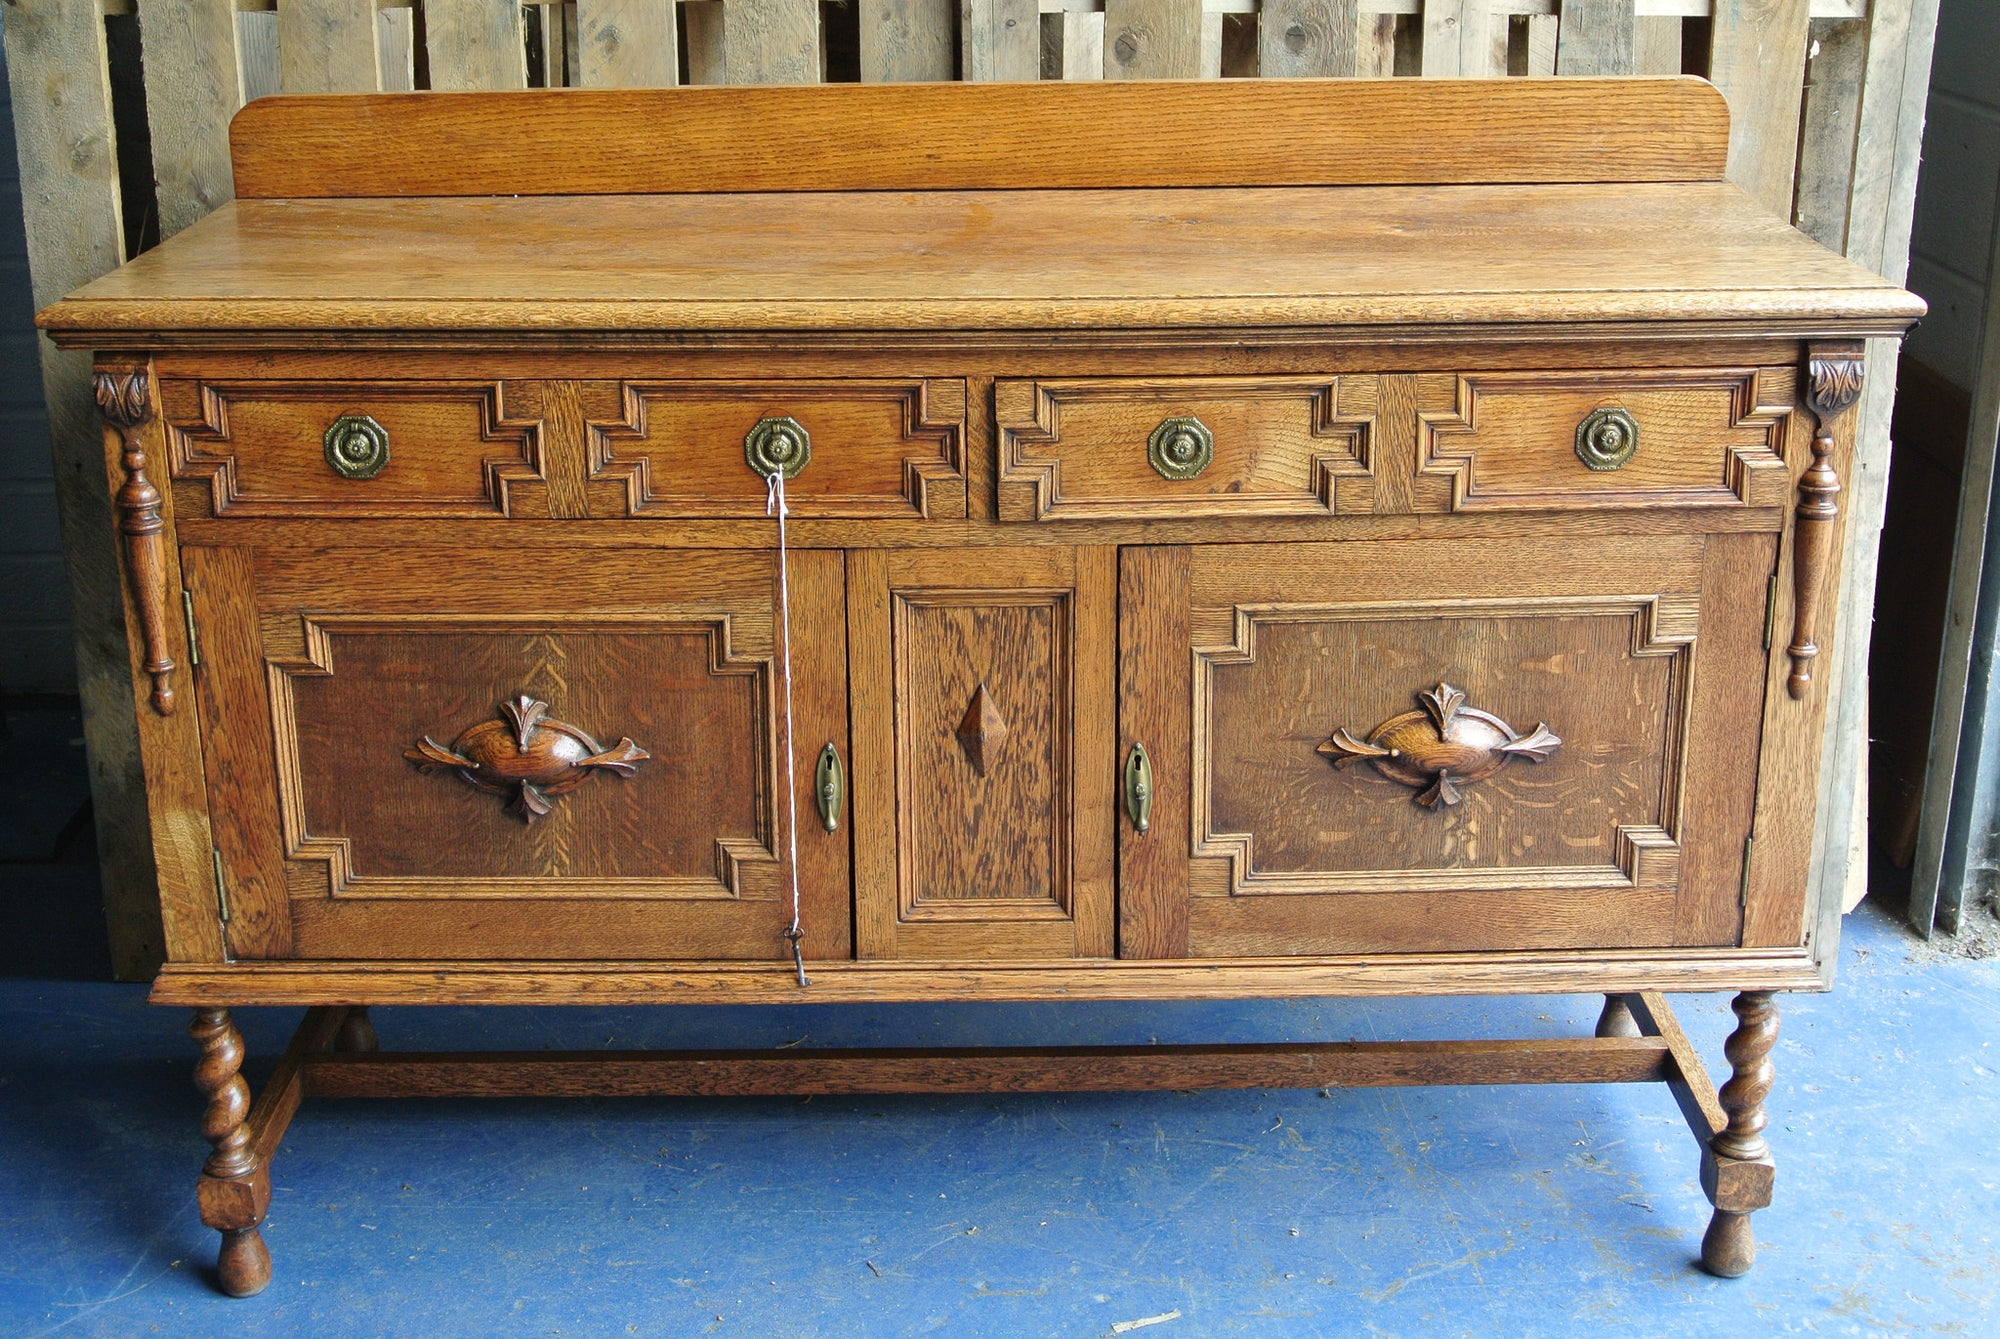 1930s oak sideboard